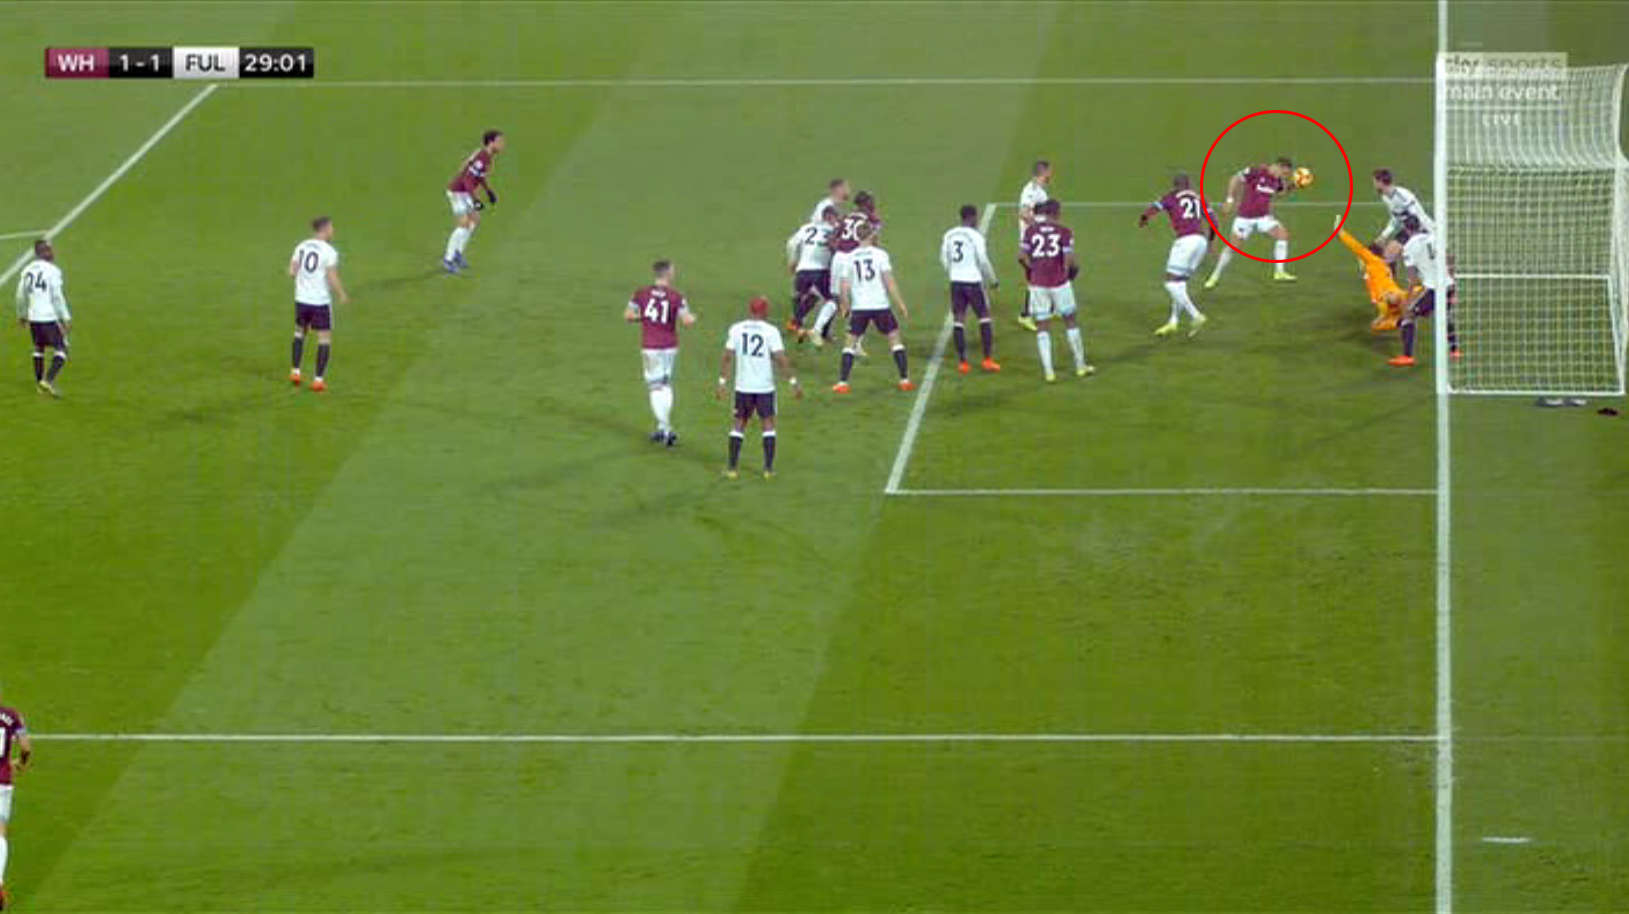 Chicharito headed the ball down onto his hand and watched on as it rolled past a helpless Rico